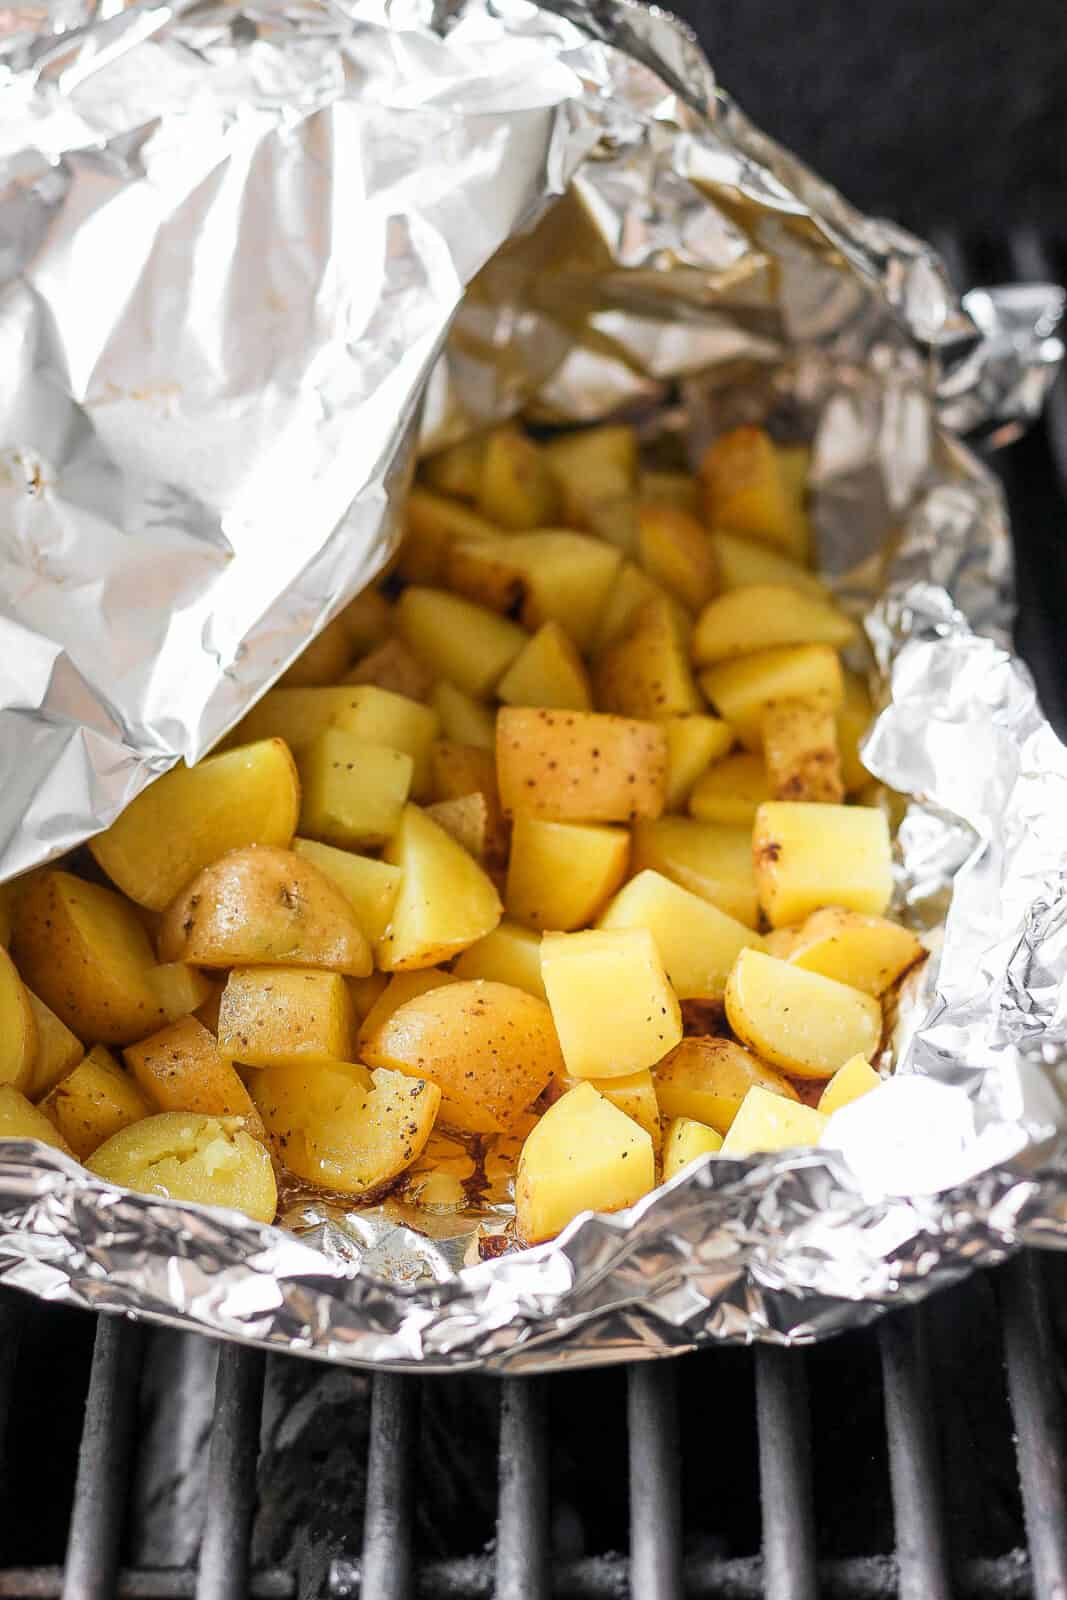 Grilled potatoes in a foil boat on the grill.